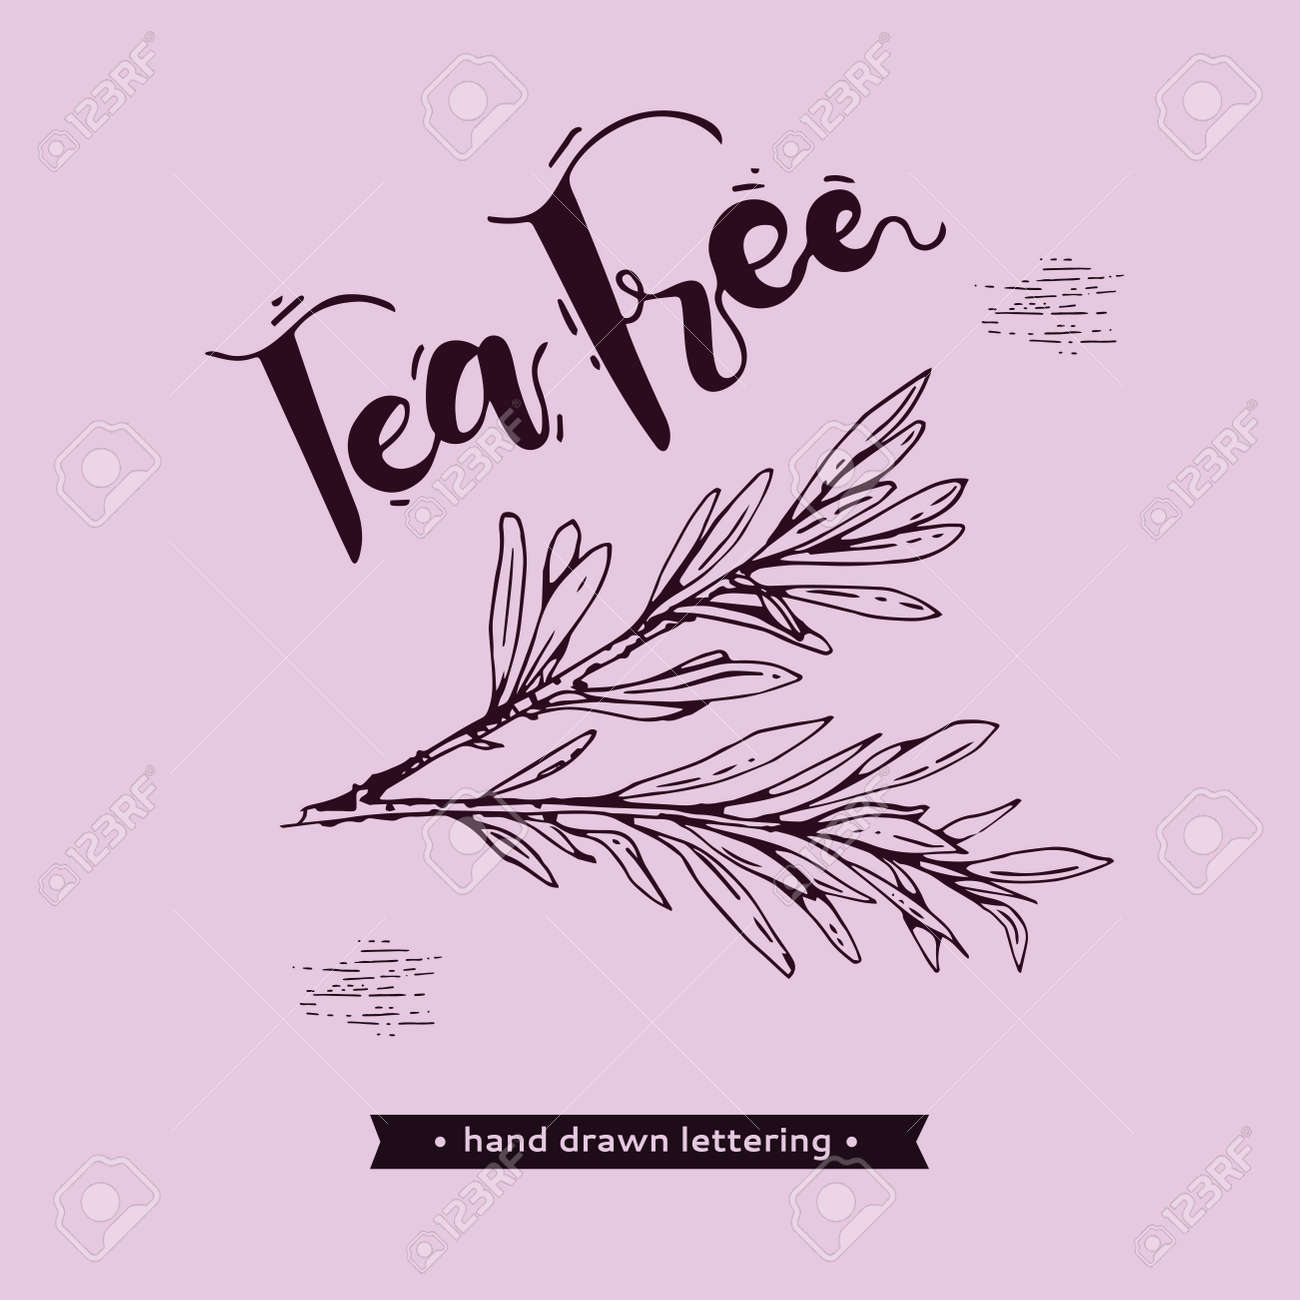 Branches with leaves of tea tree with lettering tea tree. Detailed hand-drawn sketches, vector botanical illustration. For menu, label, packaging design. - 156339359